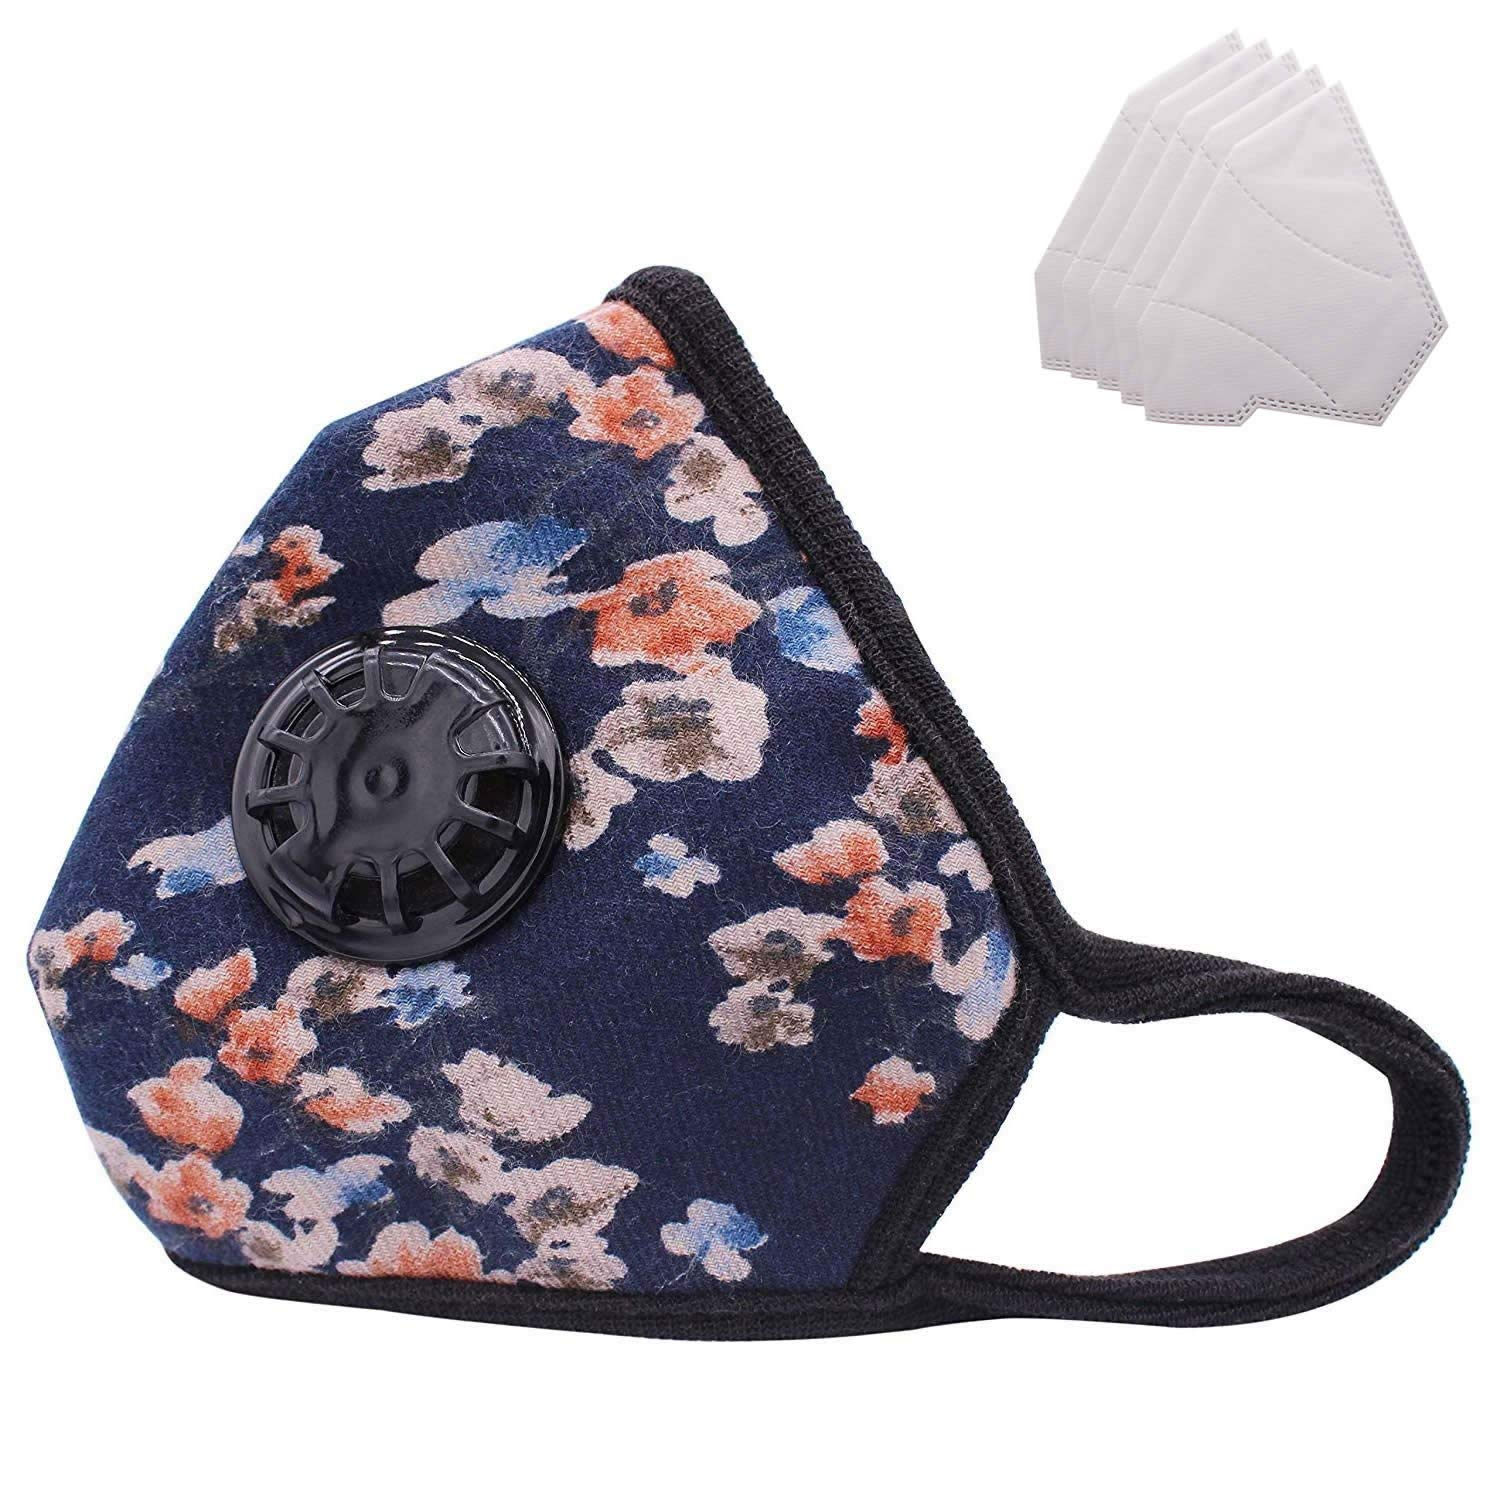 Lyanty Anti Pollution Mask Military Grade N99 Mask Washable Cotton Mouth Masks With Valve Replaceable Filter ANPLUS MASK